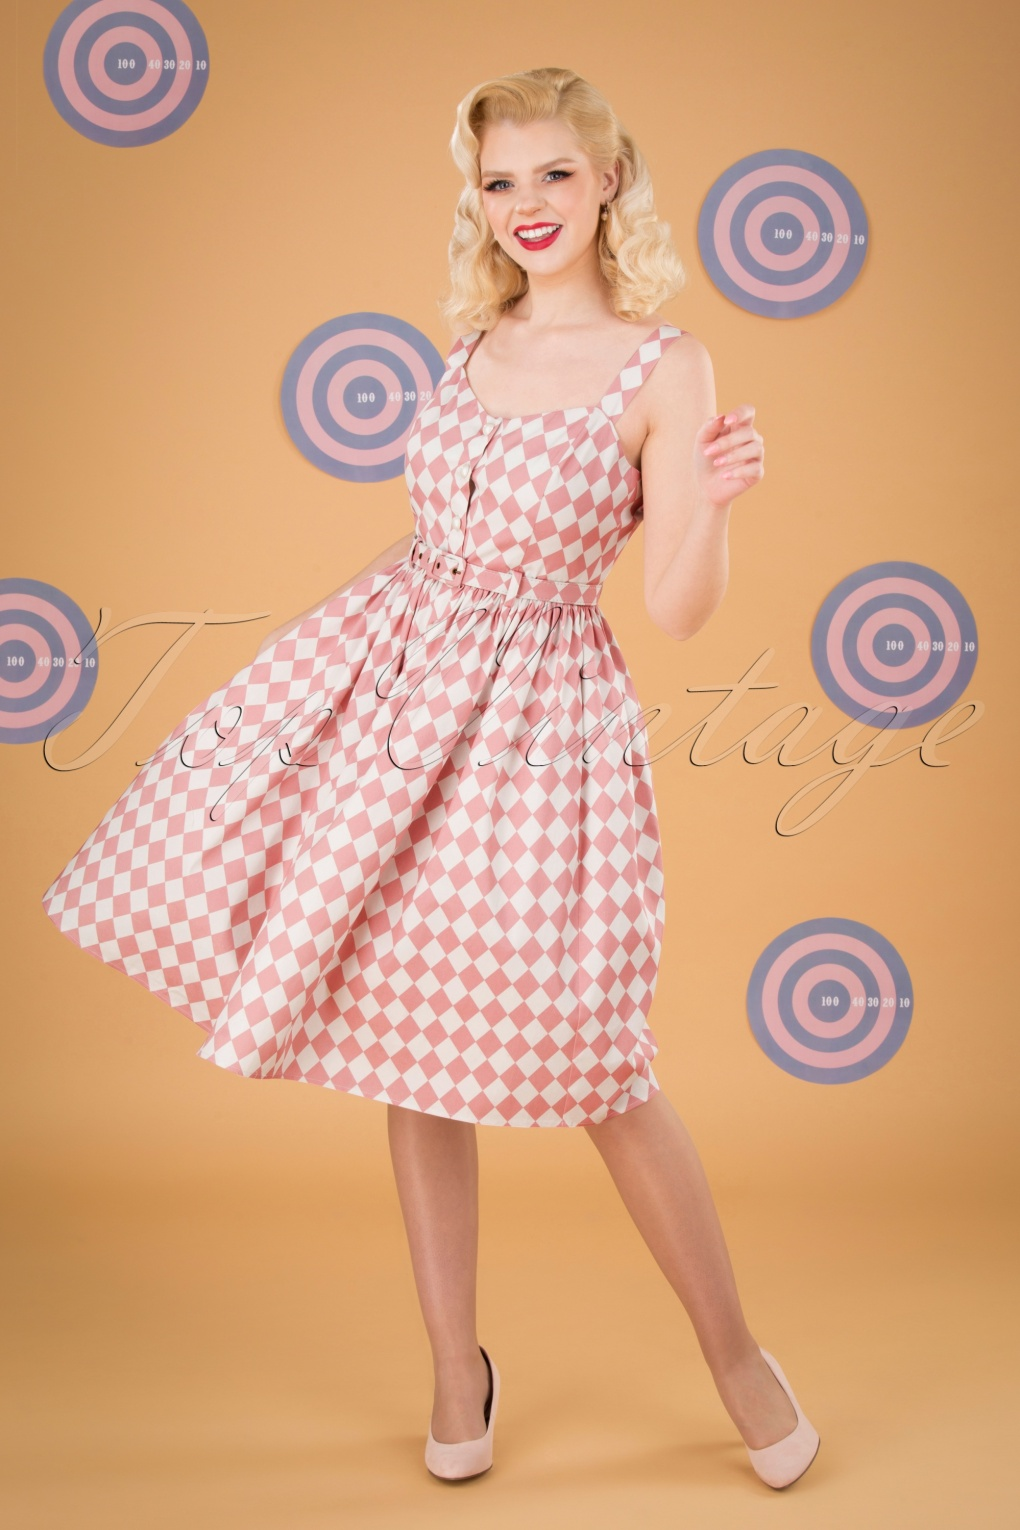 Fifties Dresses : 1950s Style Swing to Wiggle Dresses 50s Jemima Harlequin Swing Dress in Pink £63.85 AT vintagedancer.com